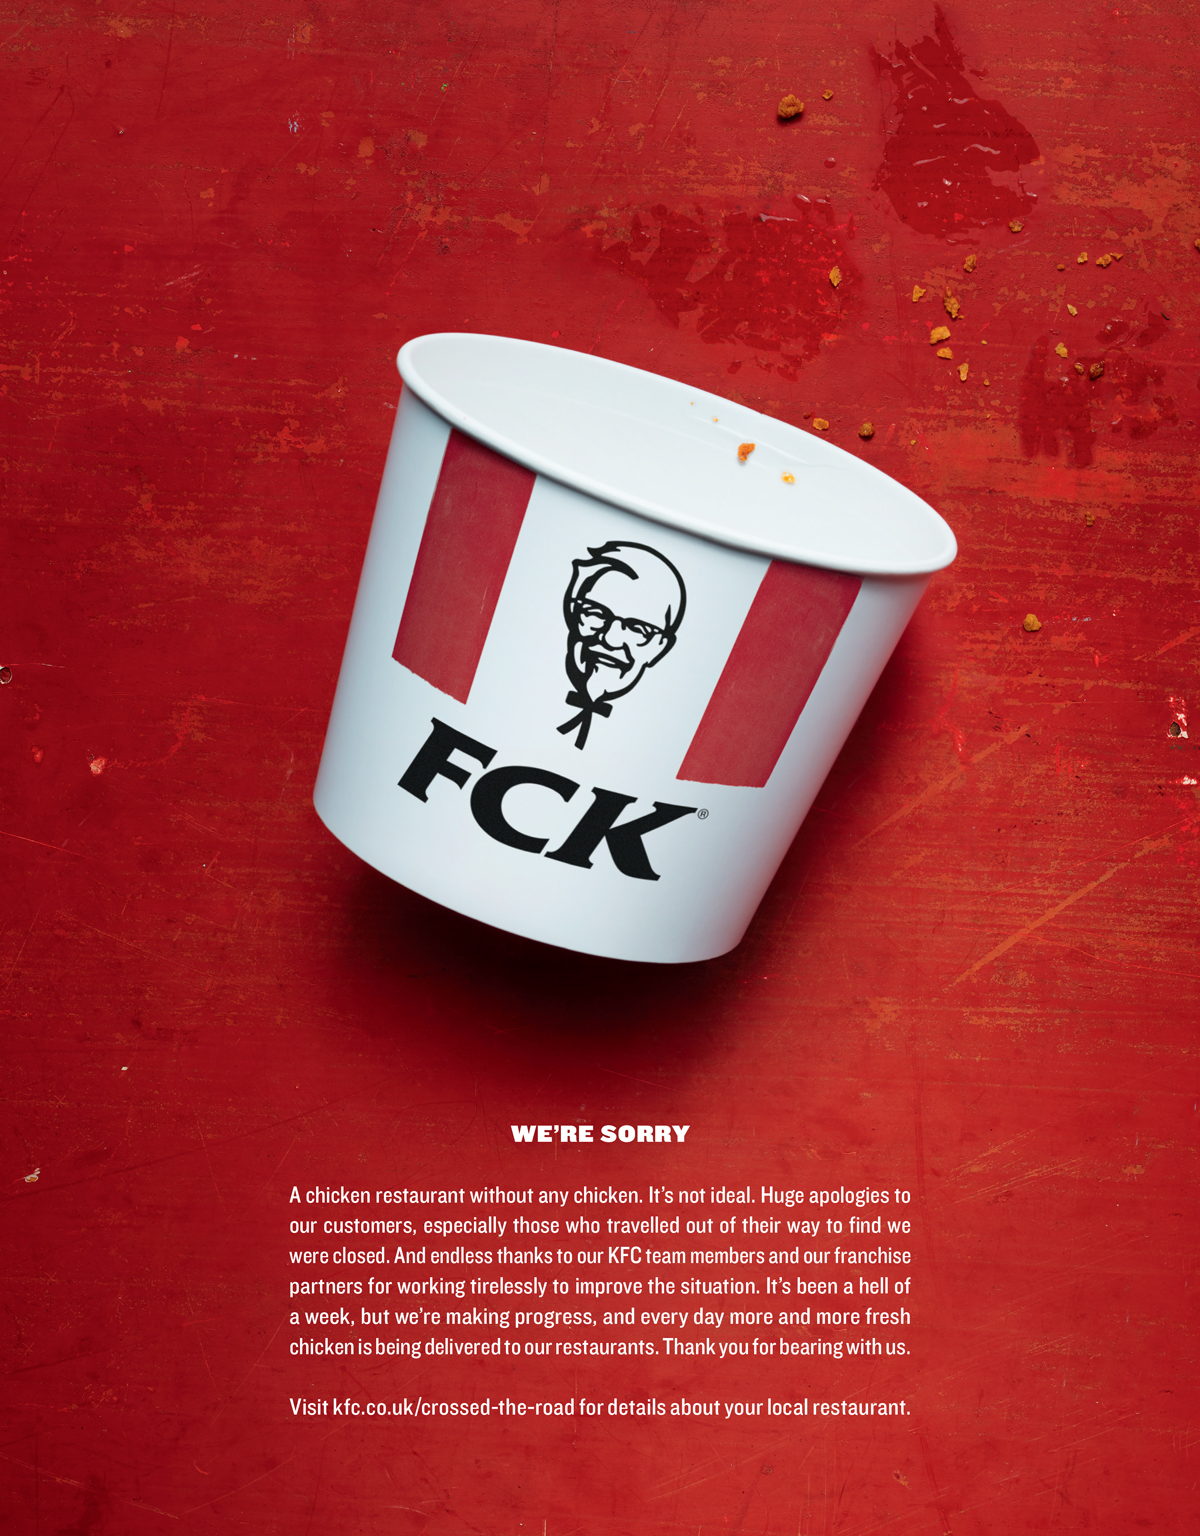 KFC admitted that they 'FCK'-ed up in a recent ad campaign